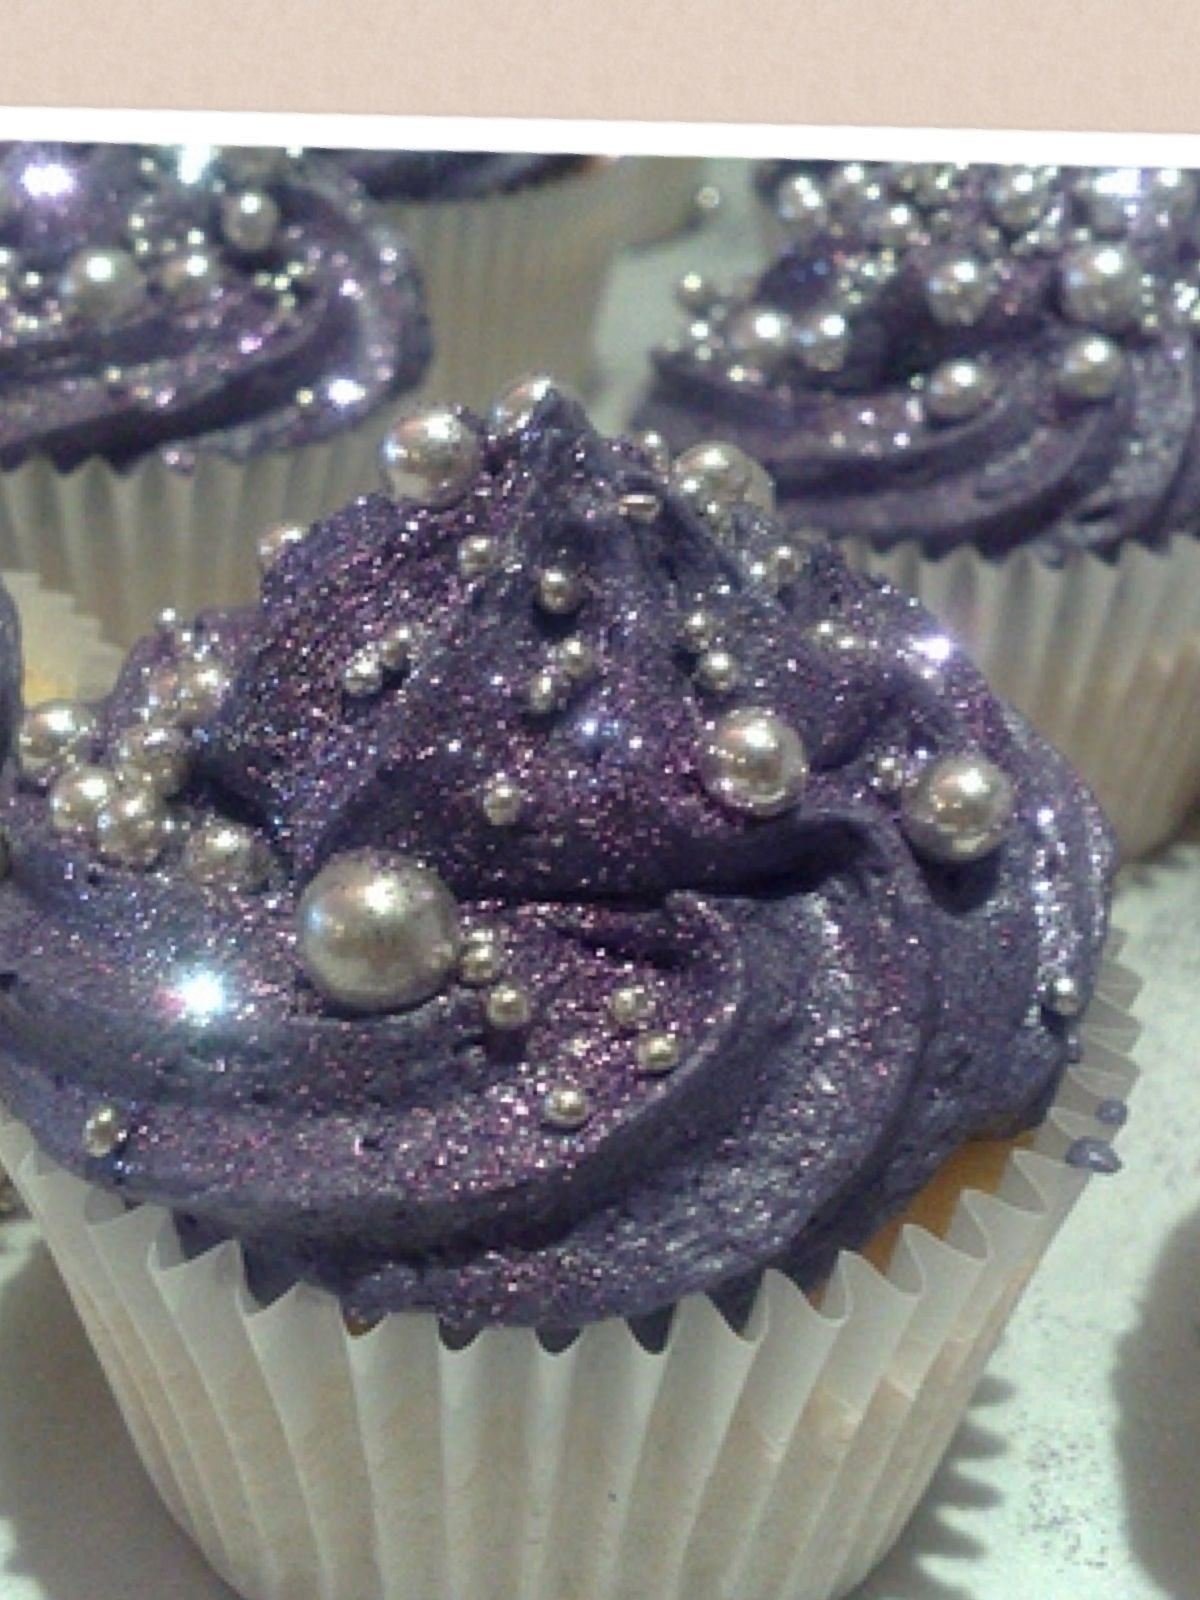 A cupcake with purple icing and silver candy balls | Cupcake cakes ...